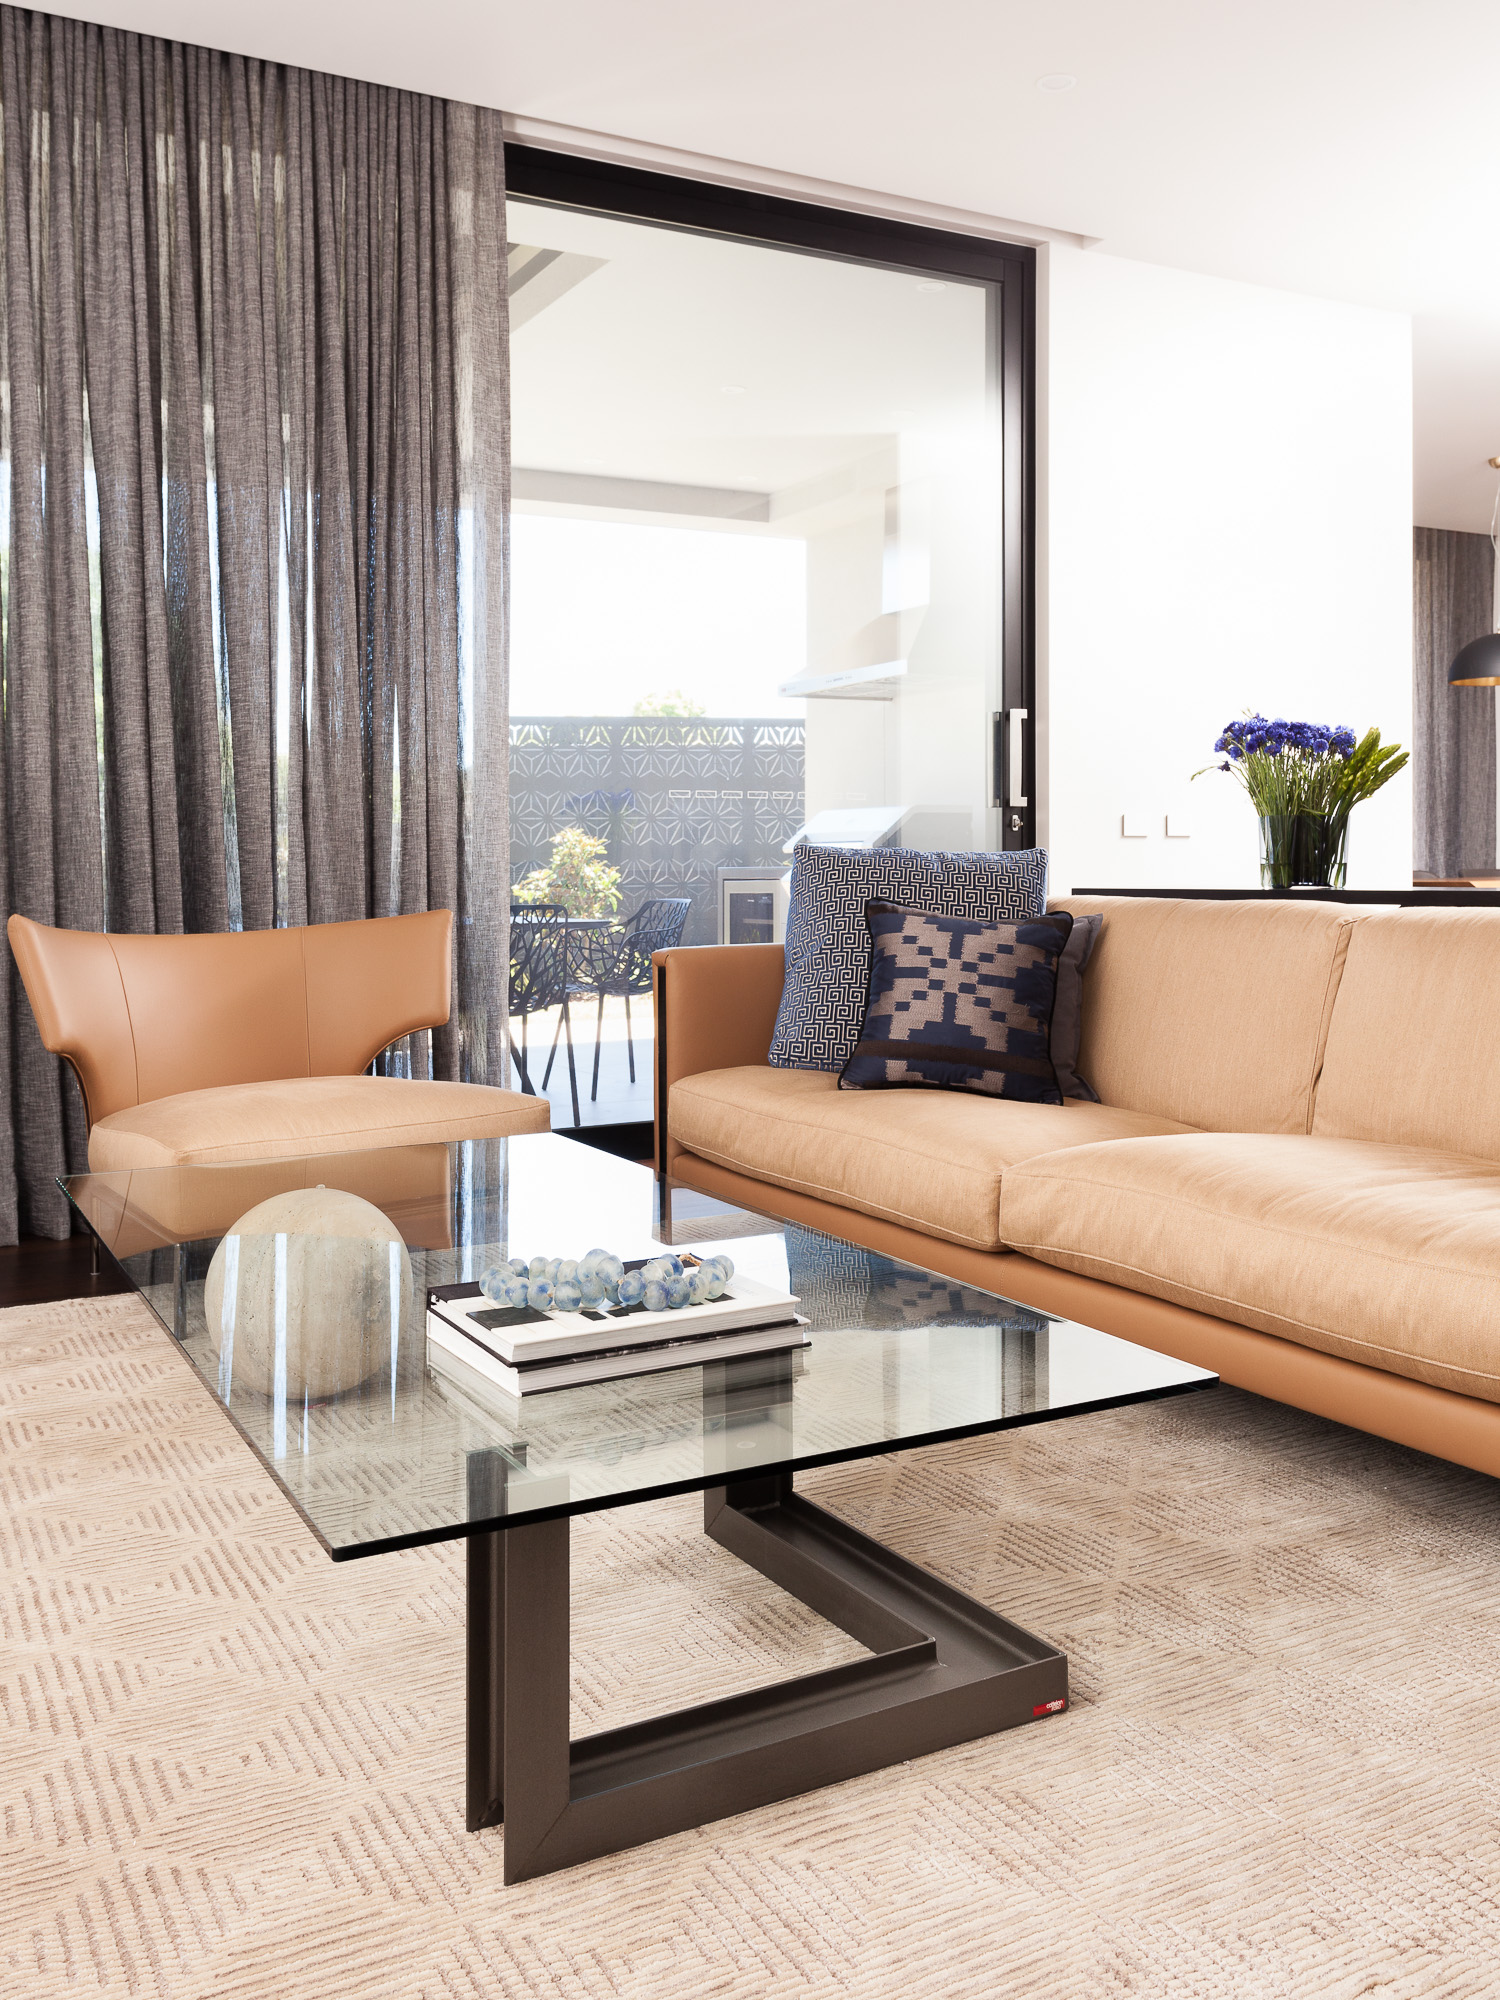 Family Room Interior Design - Melbourne